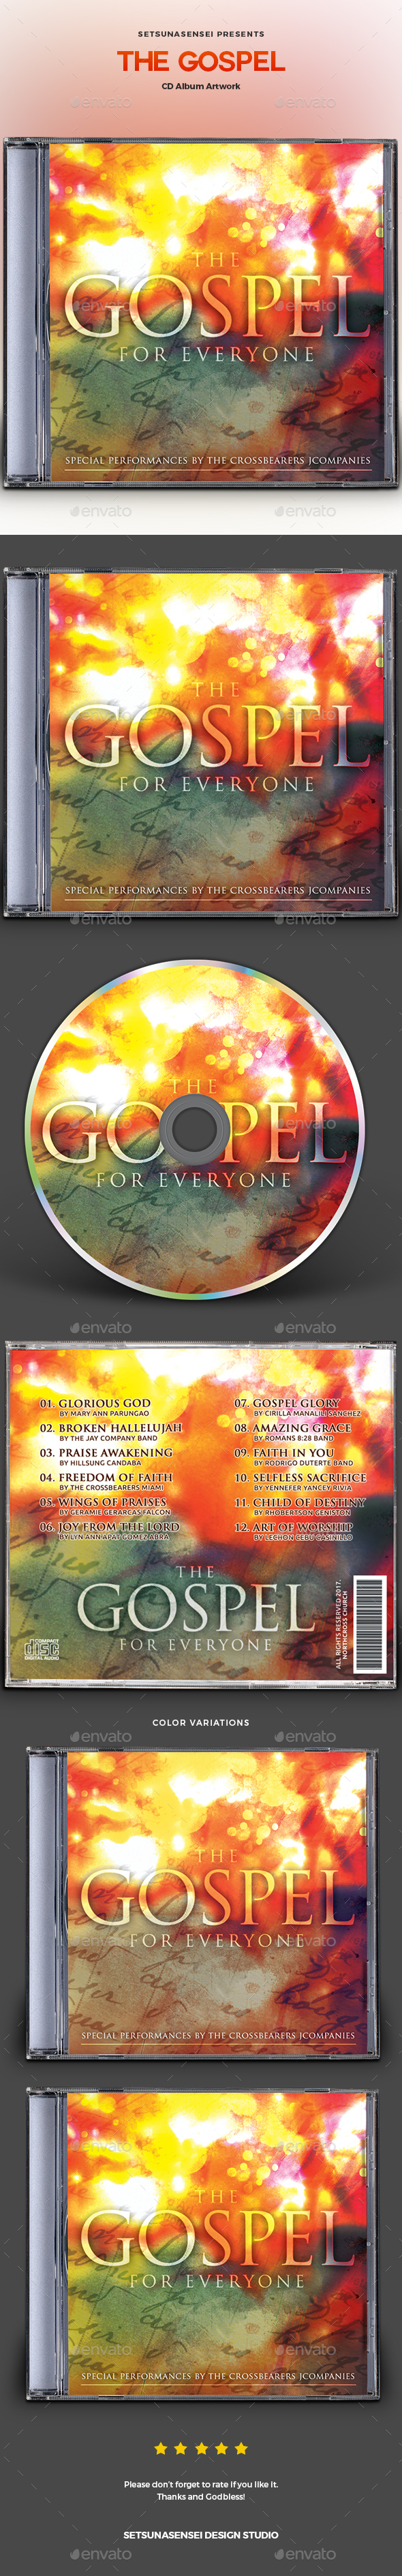 GraphicRiver The Gospel CD Album Artwork 20804221